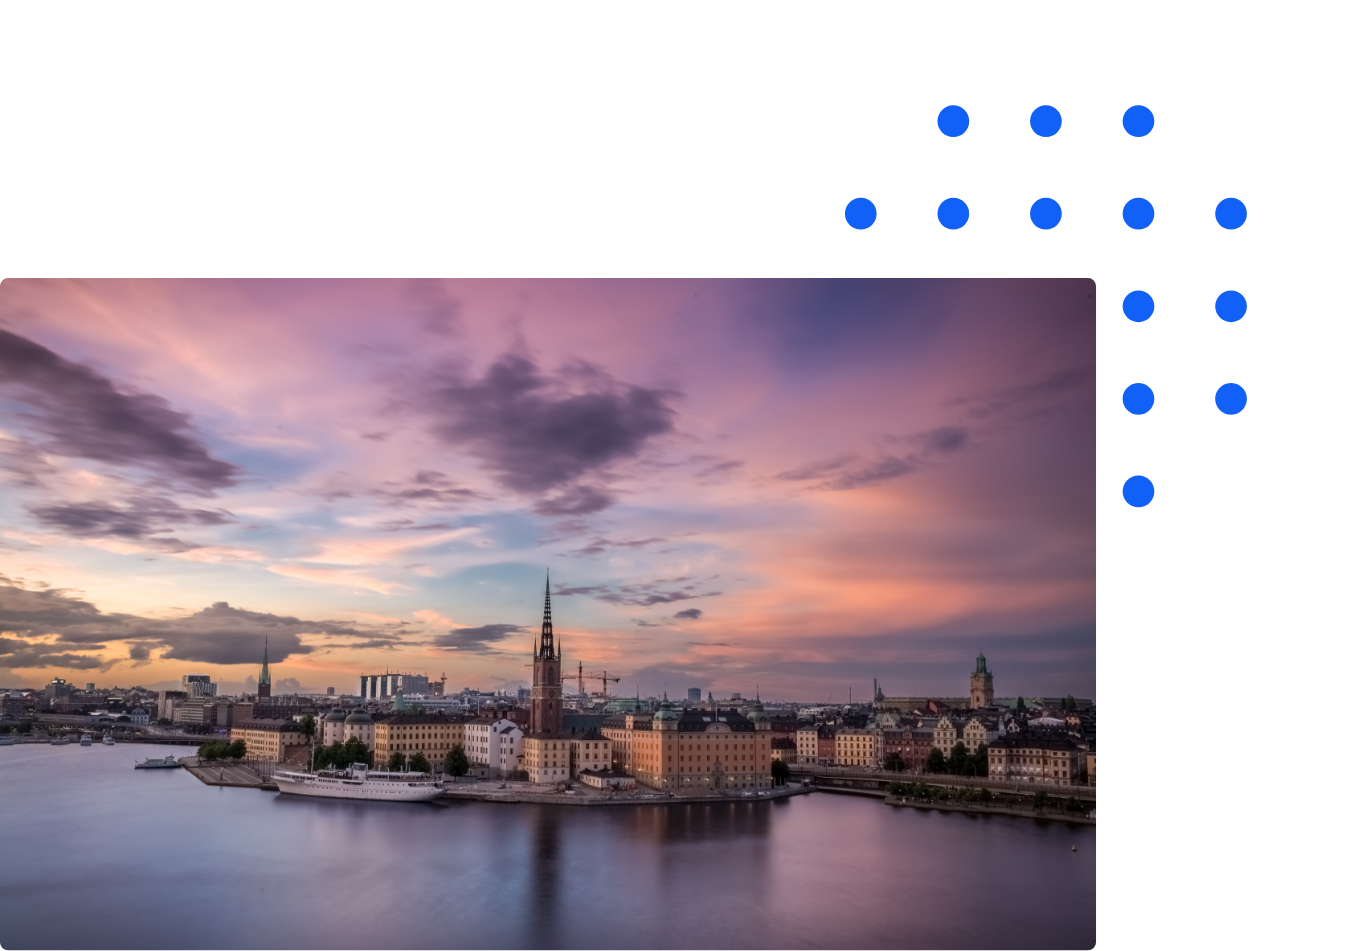 Stockholm during the sunset